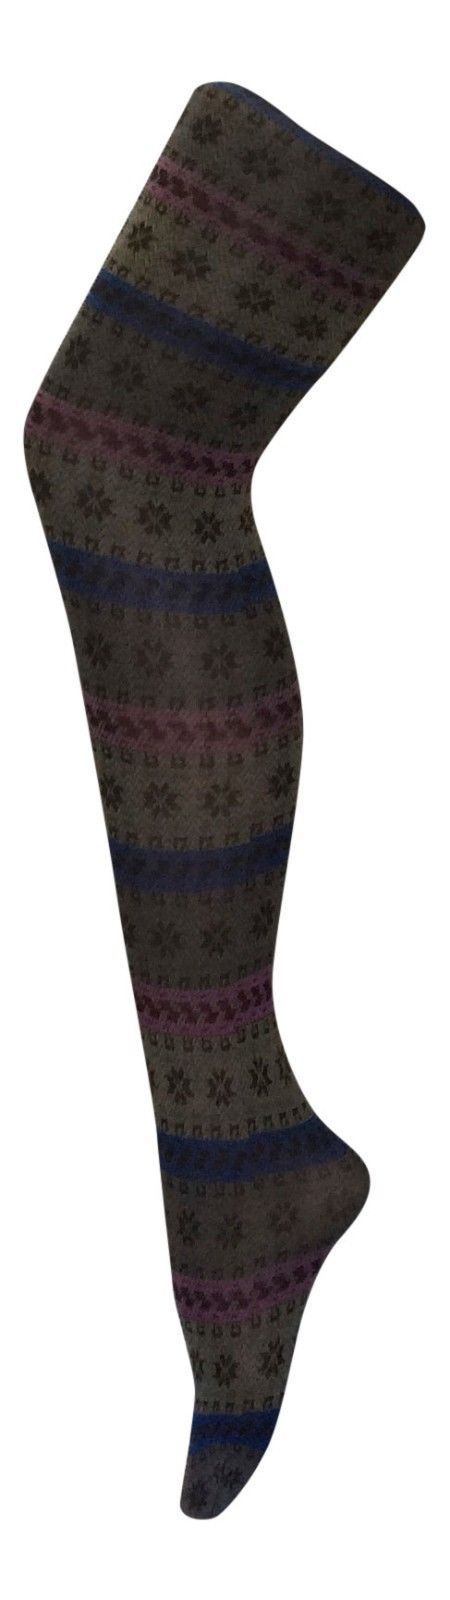 Sock Snob - Womens Thick 80 Denier Opaque Patterned Colorful Winter Tights